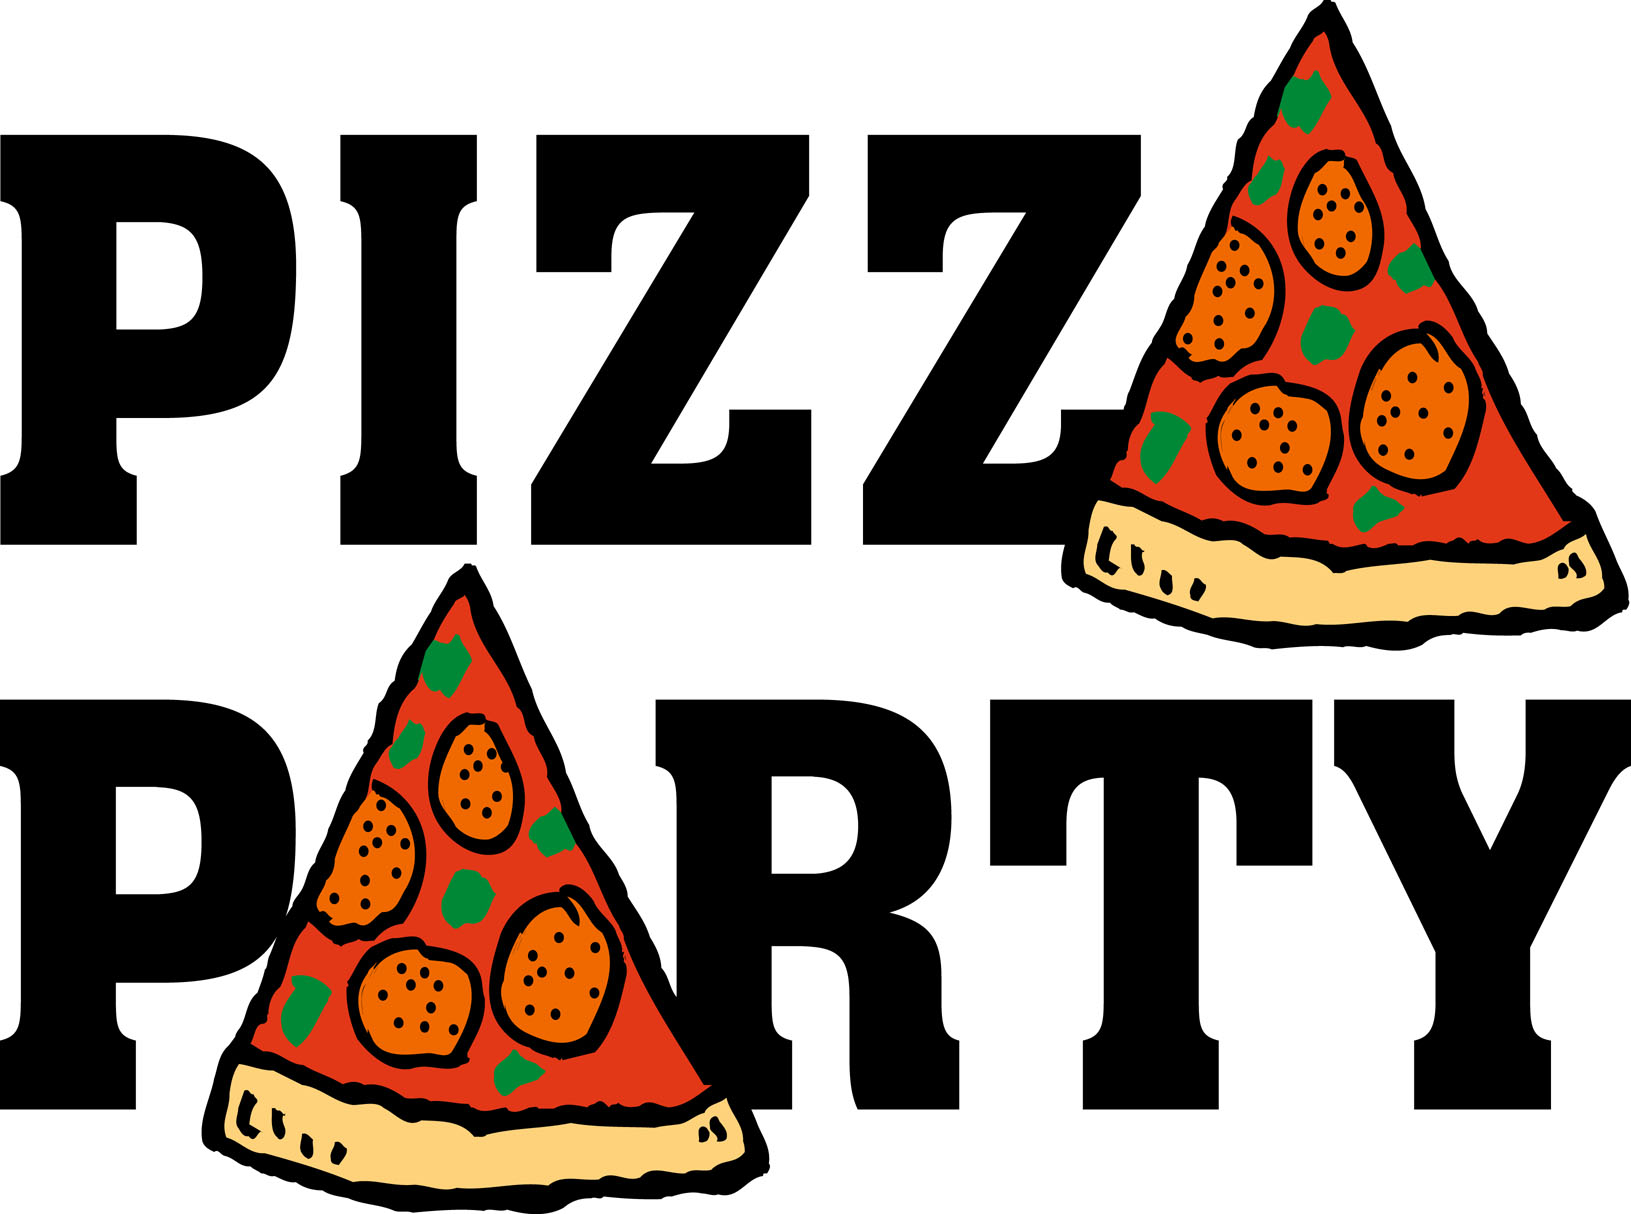 https://i2.wp.com/cornwallcurling.com/wp-content/uploads/PizzaParty.jpg